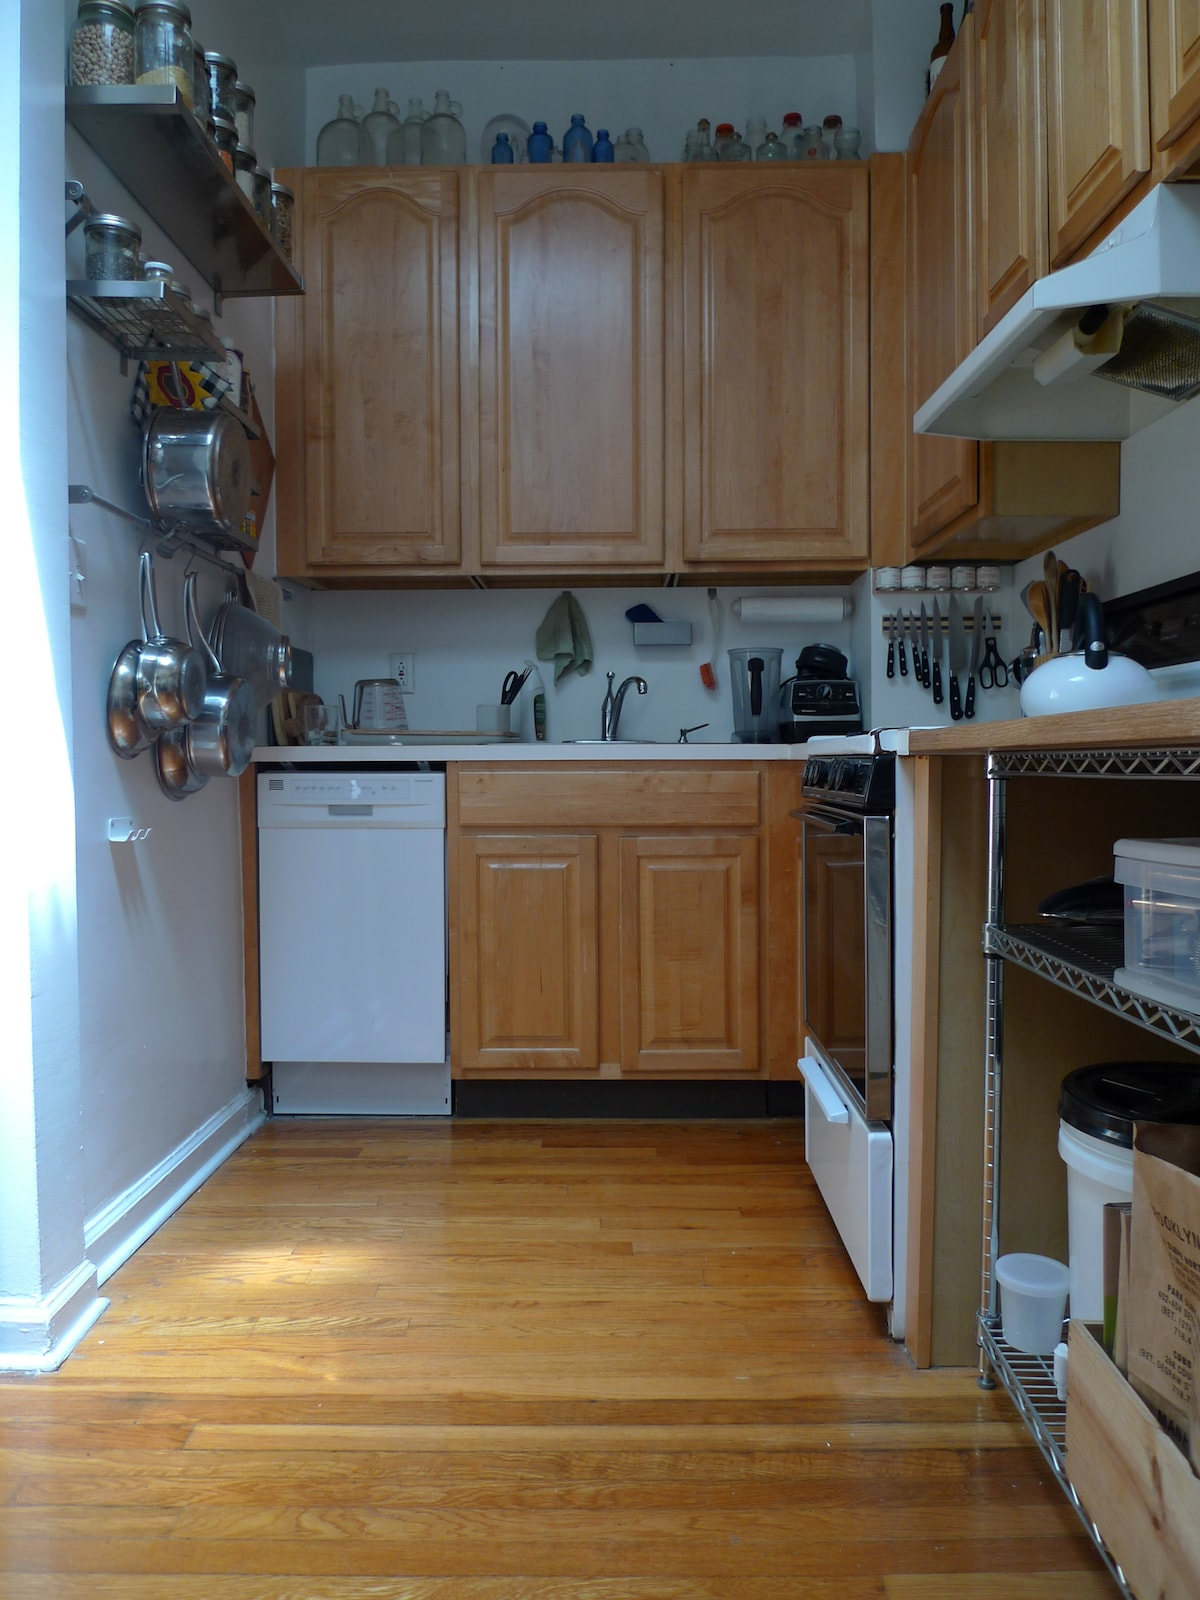 kitchen with dishwasher and skylight